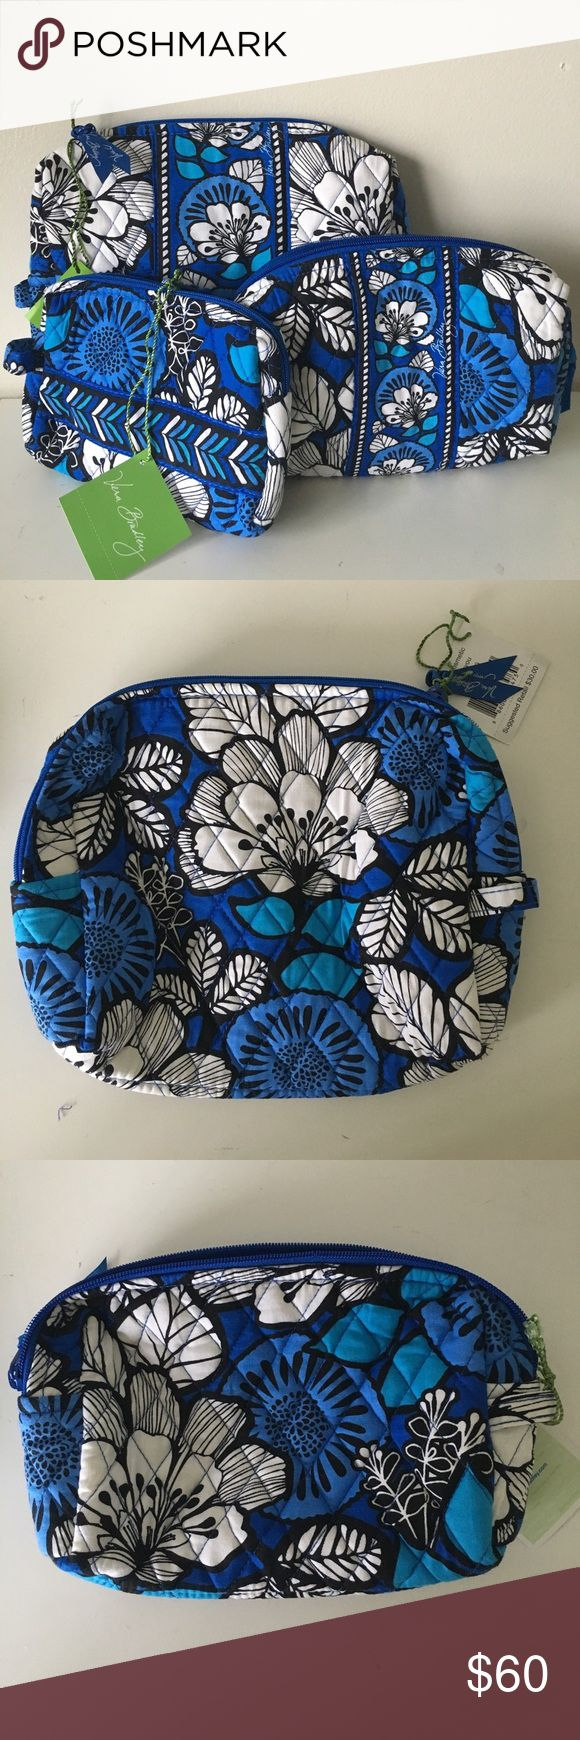 "Small Medium Large Cosmetic Bag Set • Brand: Vera Bradley • Pattern: BLUE BAYOU • NEW with original tags - NEVER used SIZES - • Small: 6.5"" h, 7"" w, 1"" d • Medium: 7"" h, 8"" w, 2.5 d • Large: 8"" h, 9"" w, 3"" d Vera Bradley Bags Cosmetic Bags & Cases"